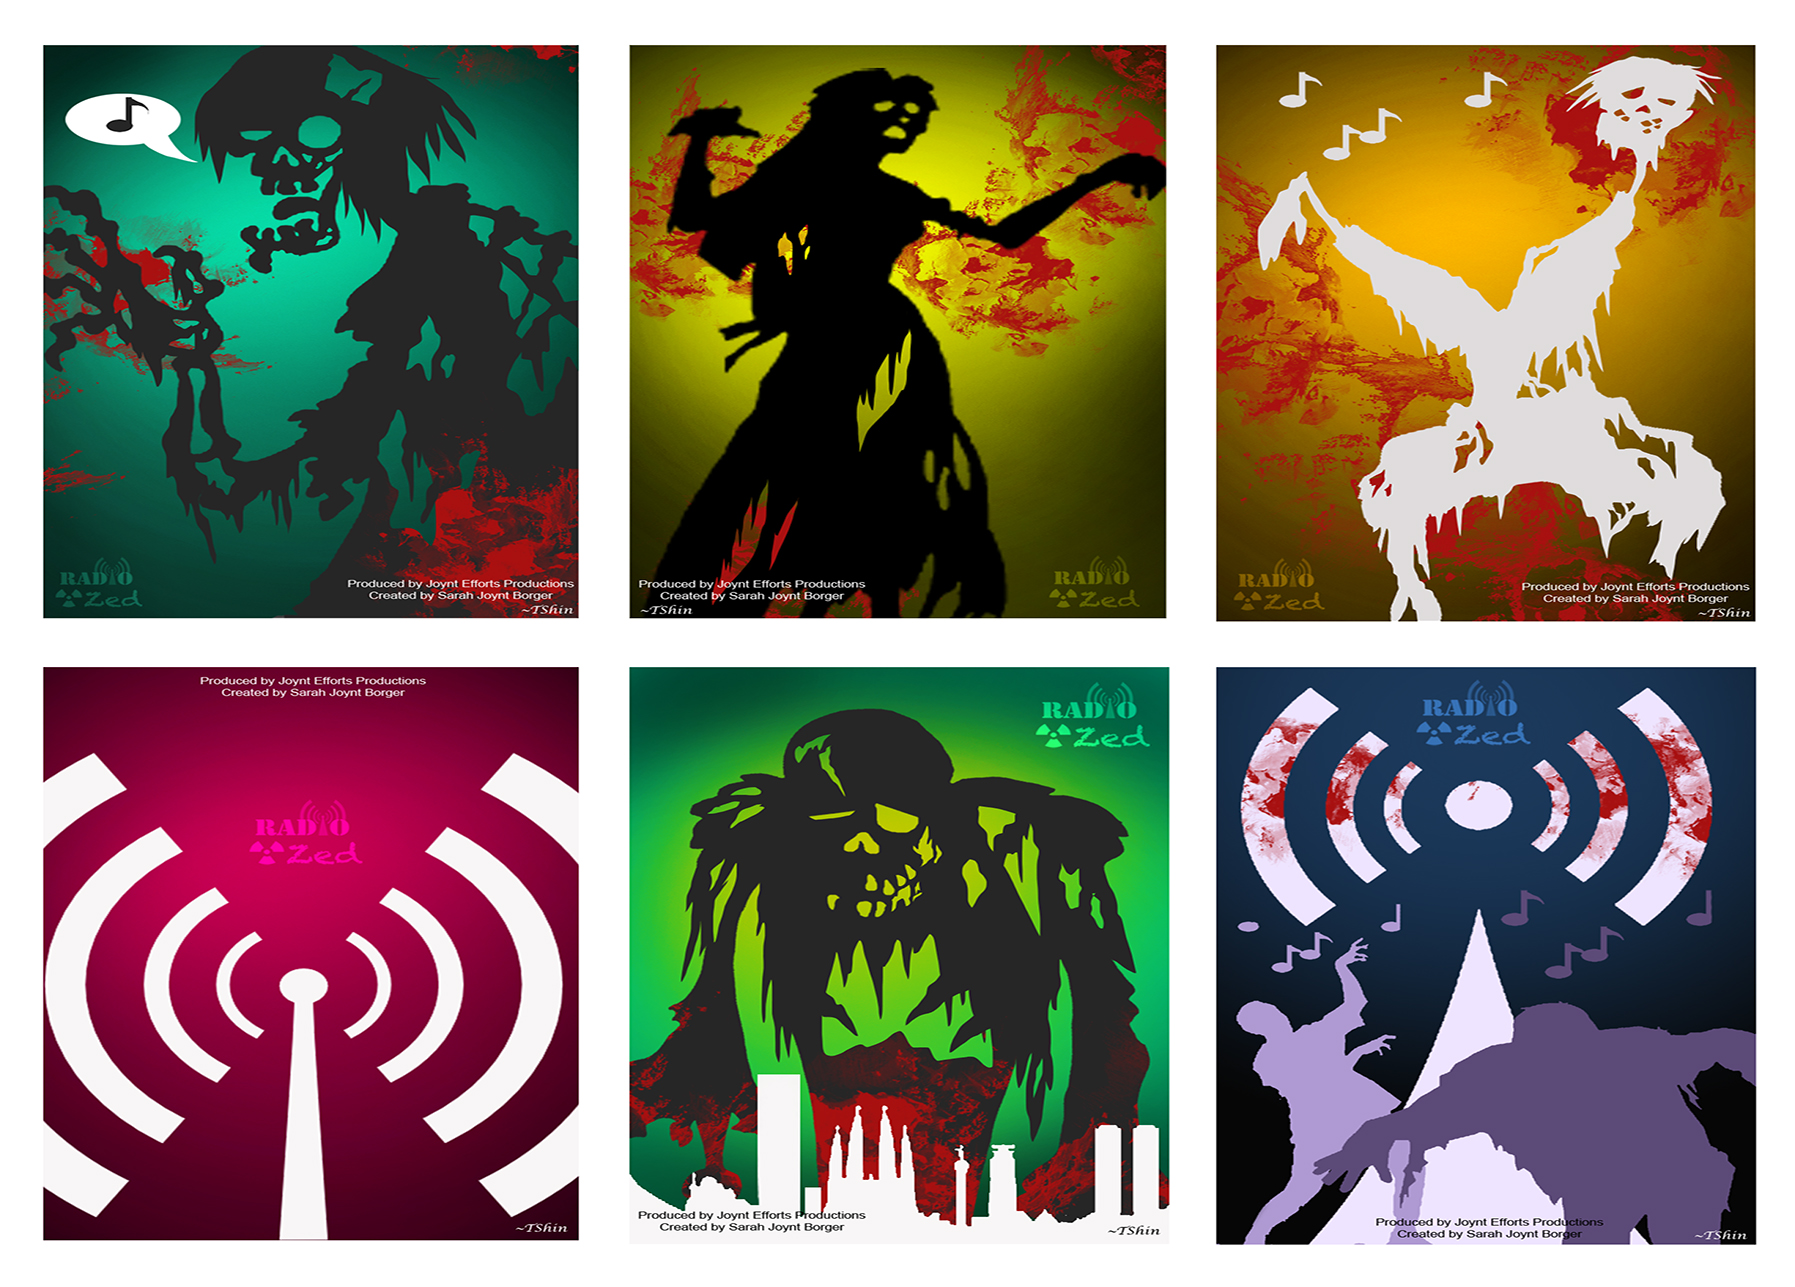 All Six Posters